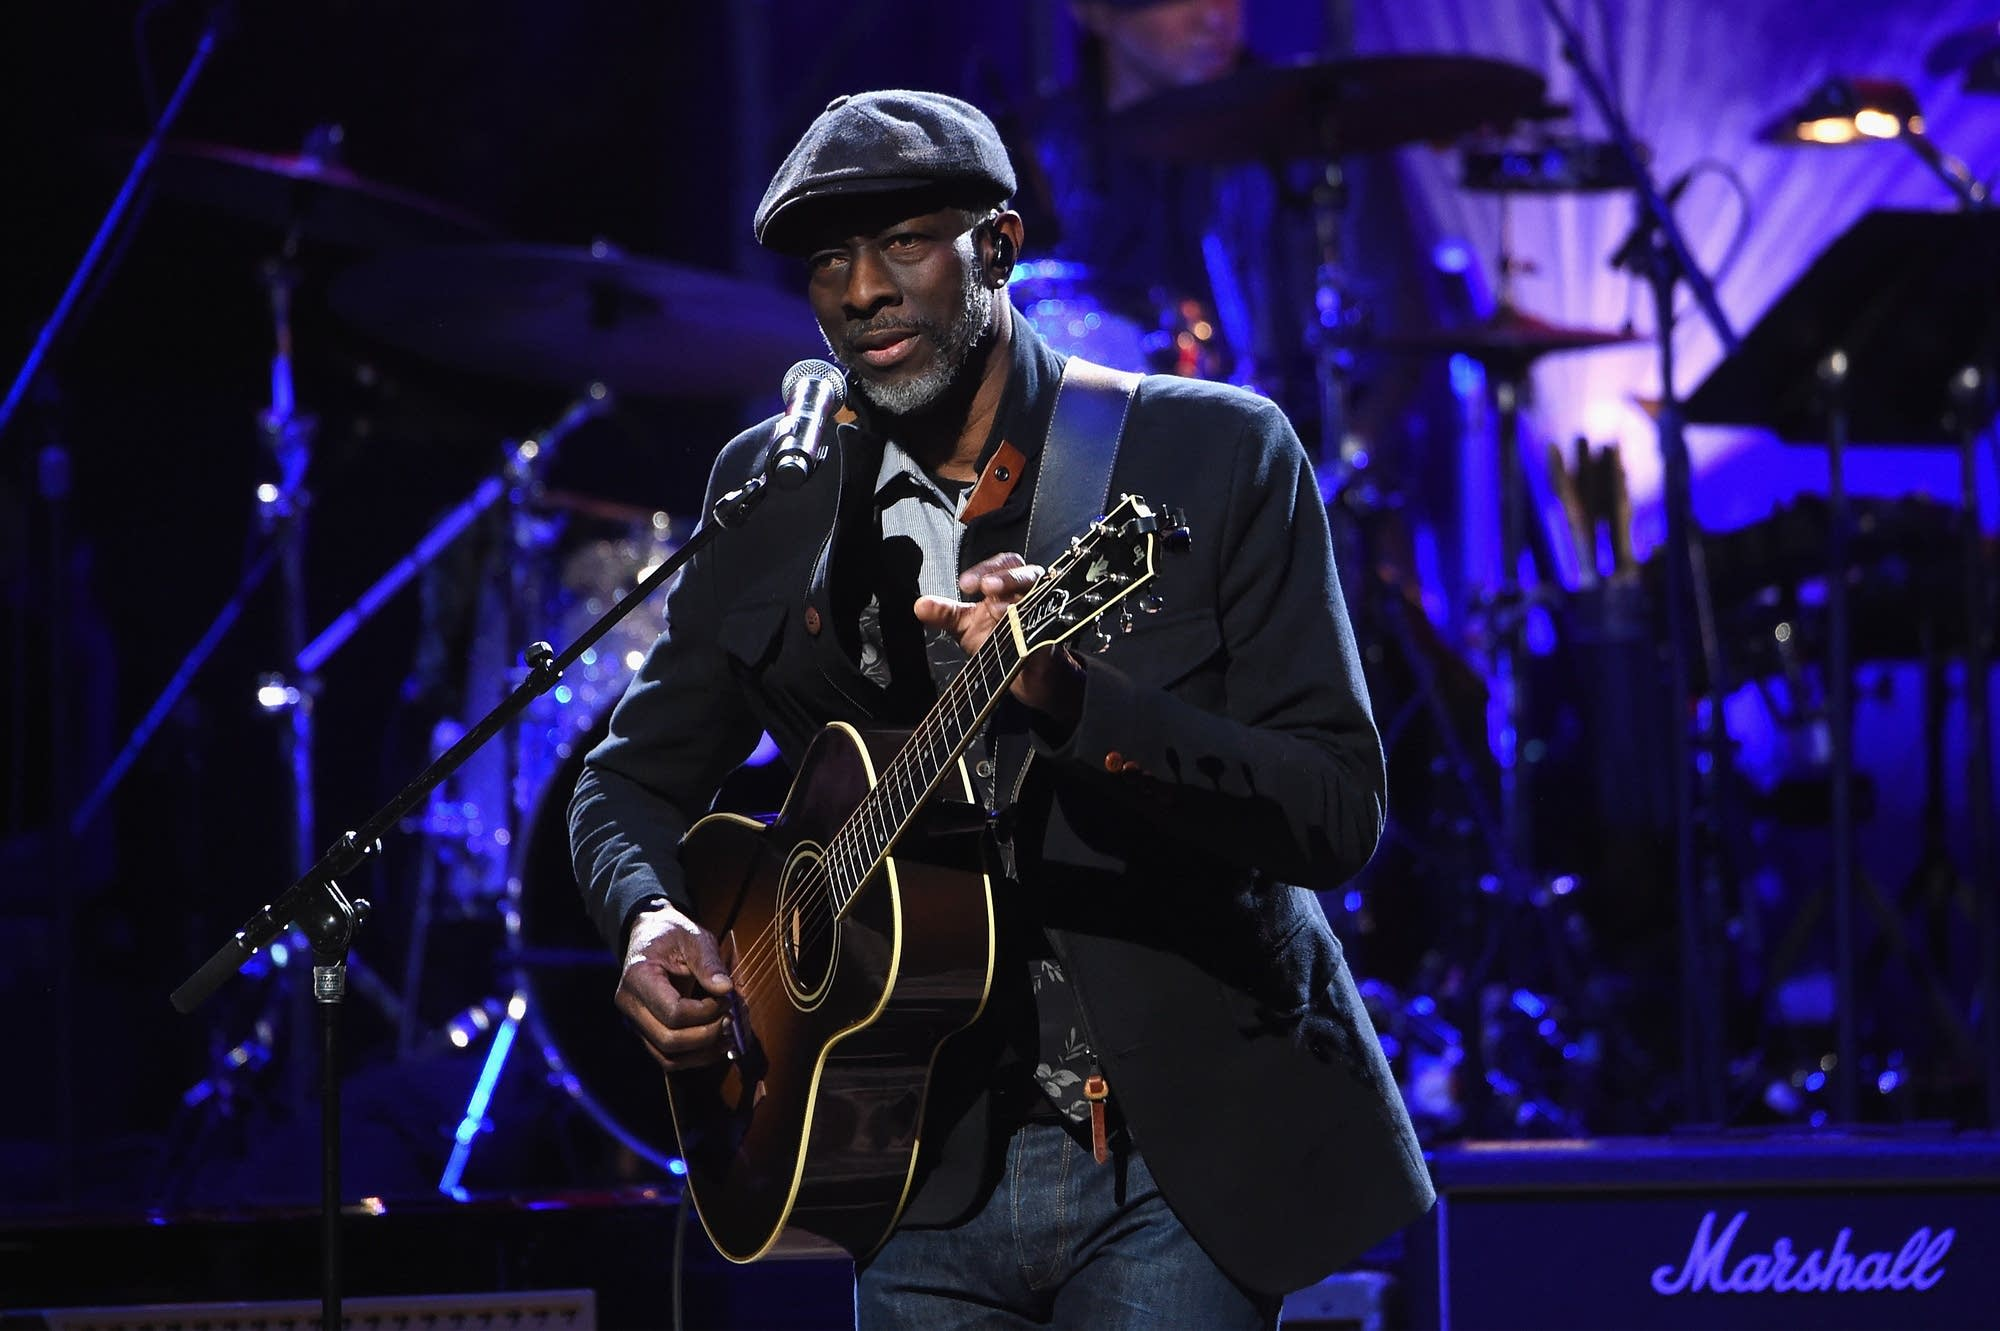 Blues musician Keb Mo performing in New York